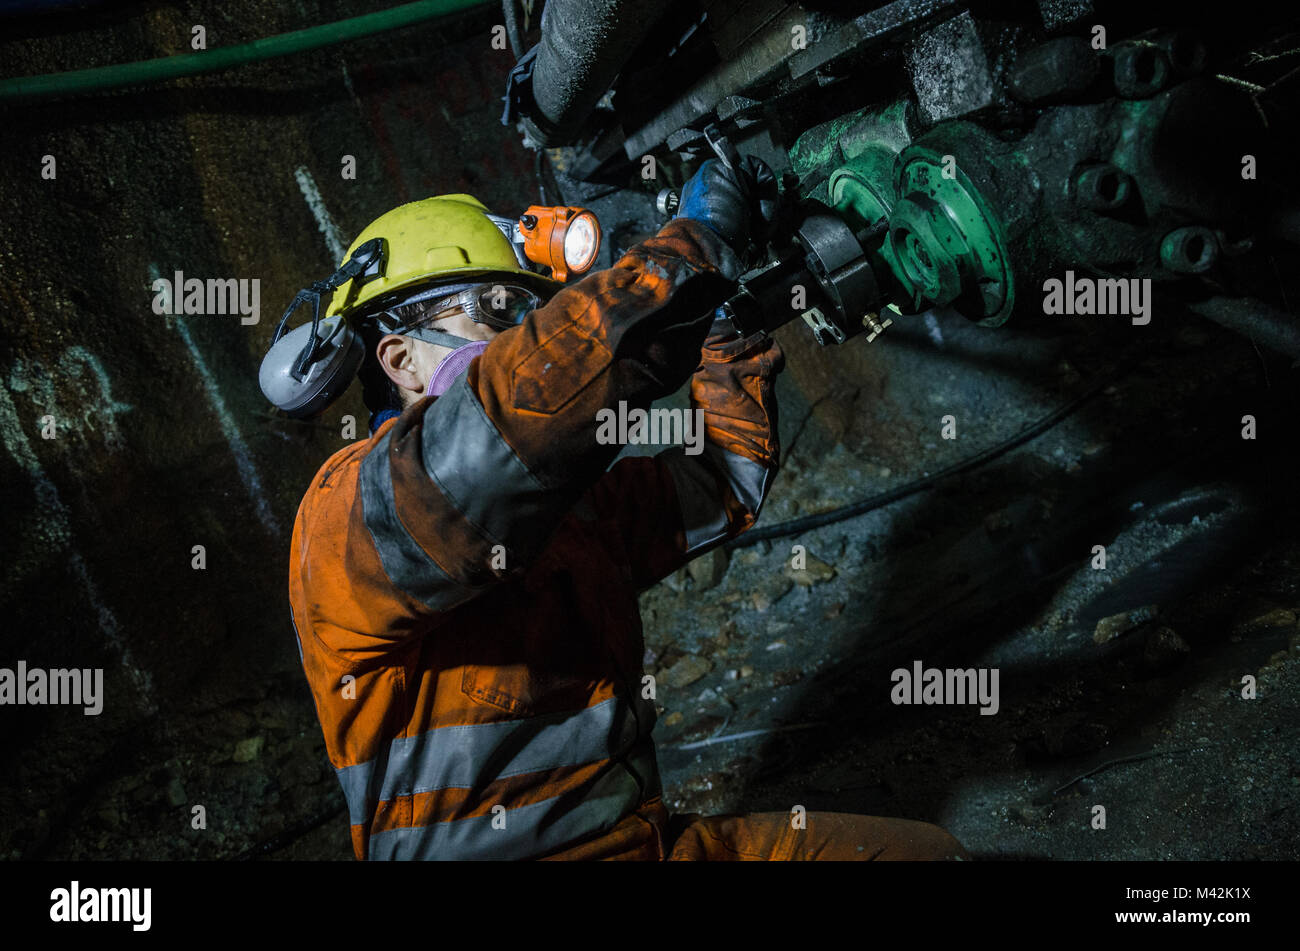 Miner fixing mineral extraction machine - Stock Image